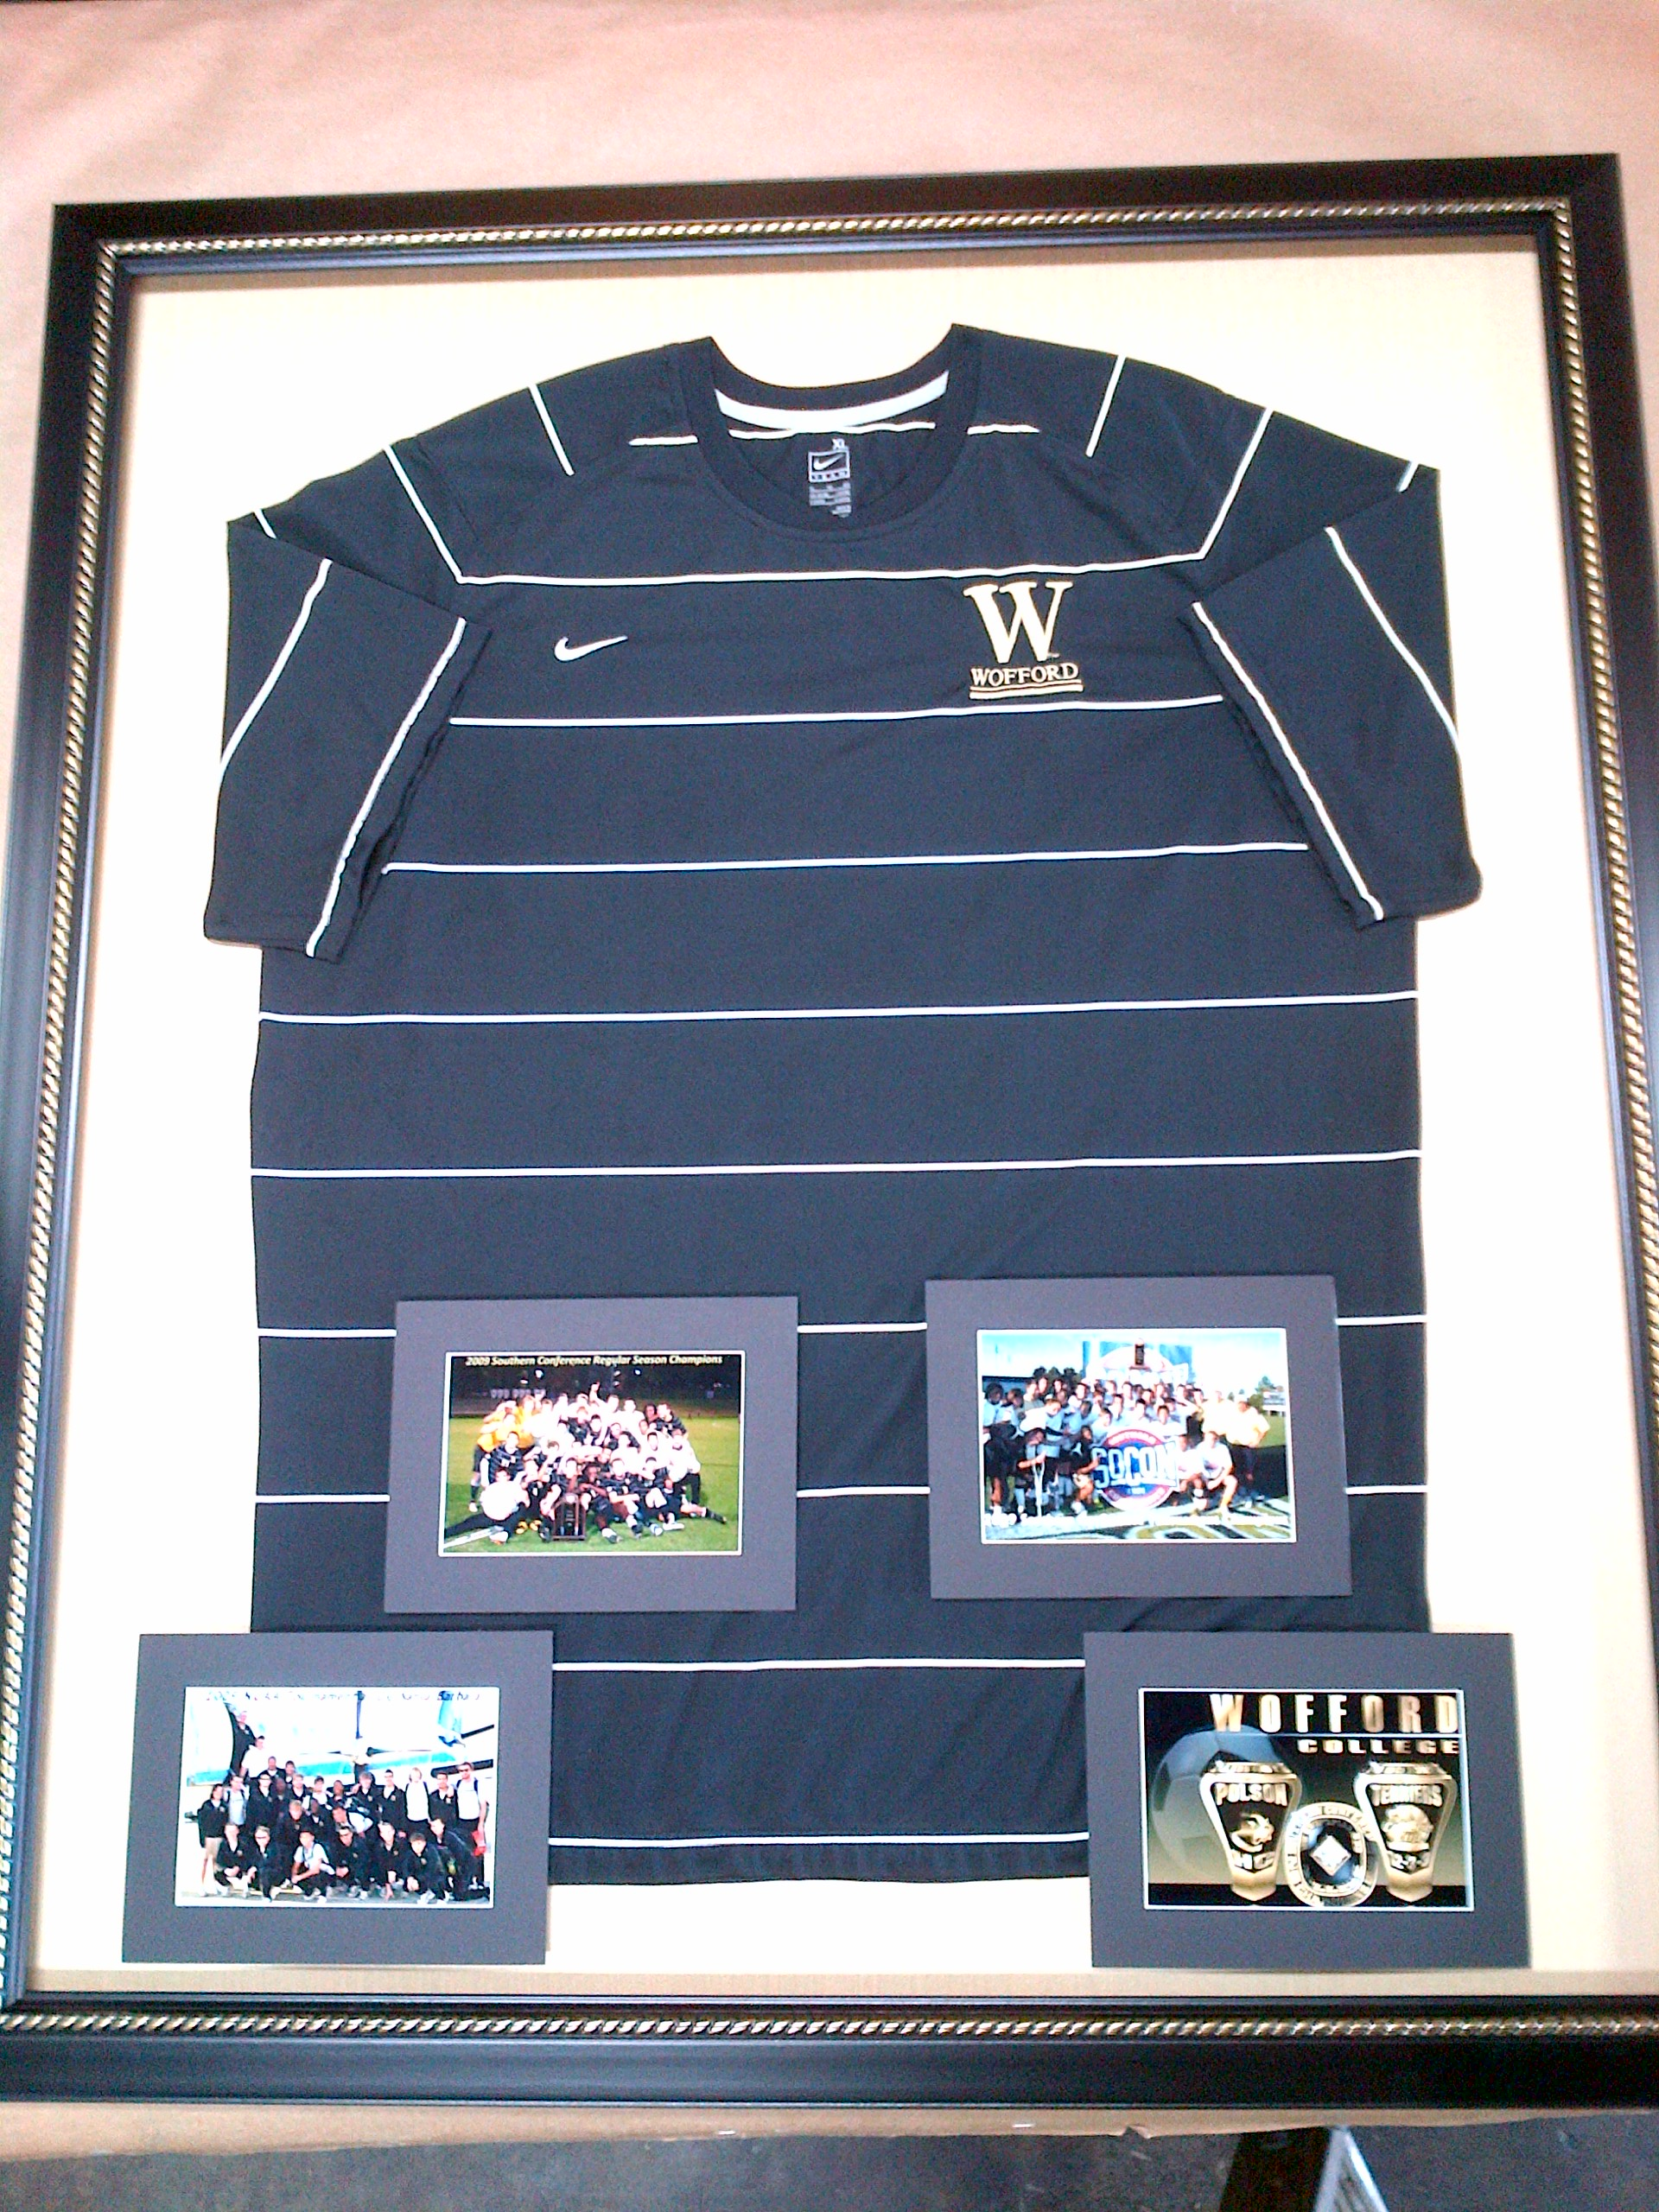 online store 64a57 48702 Custom Framed Wofford College Soccer Jersey – Columbia Frame ...